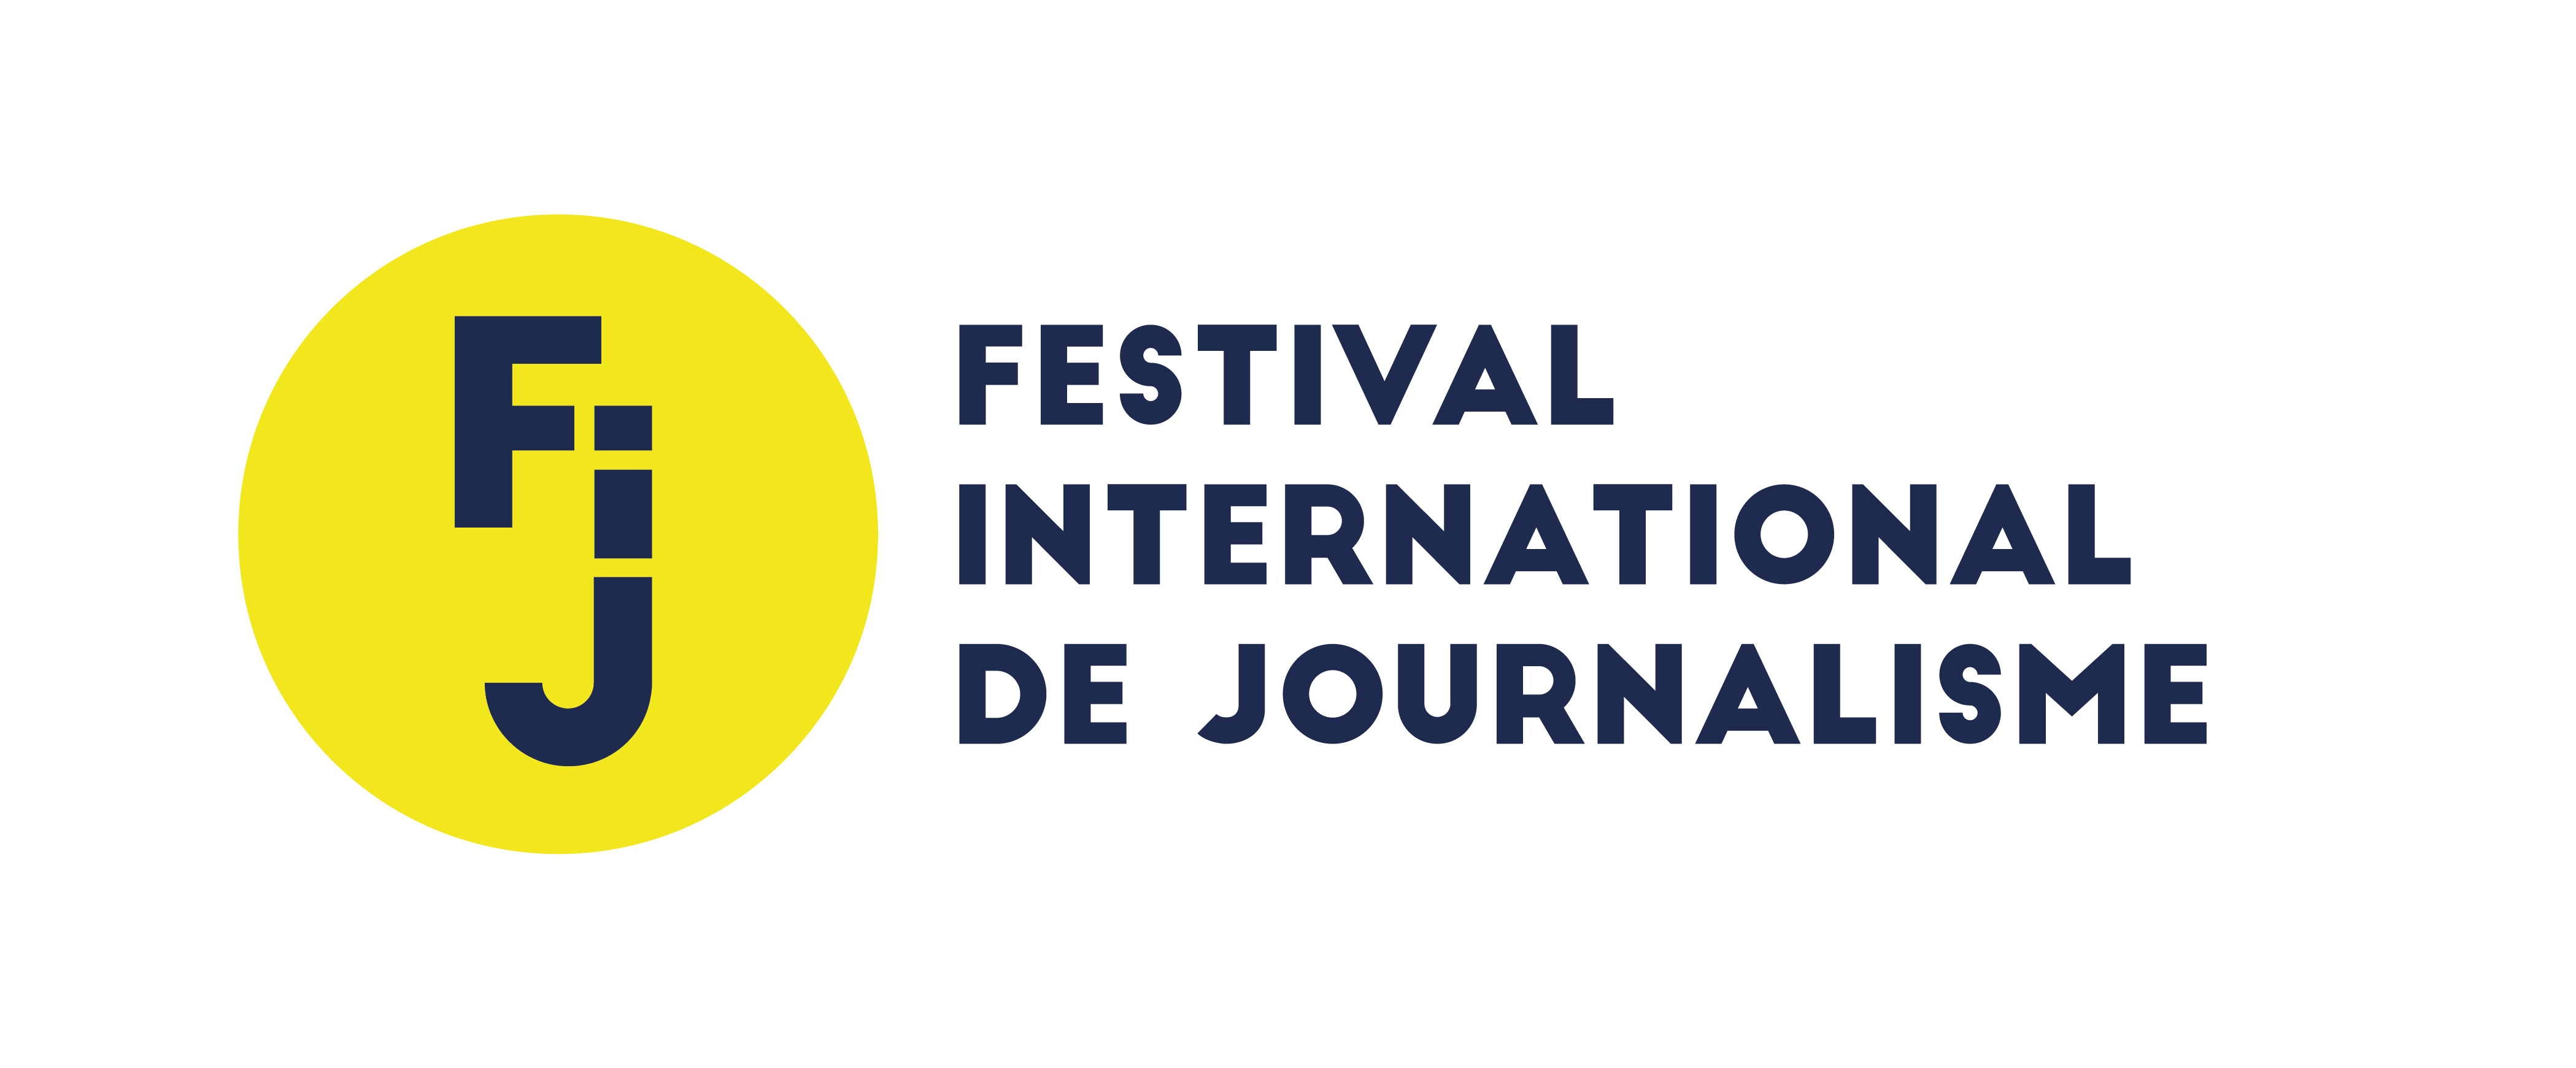 Festival International Journalisme